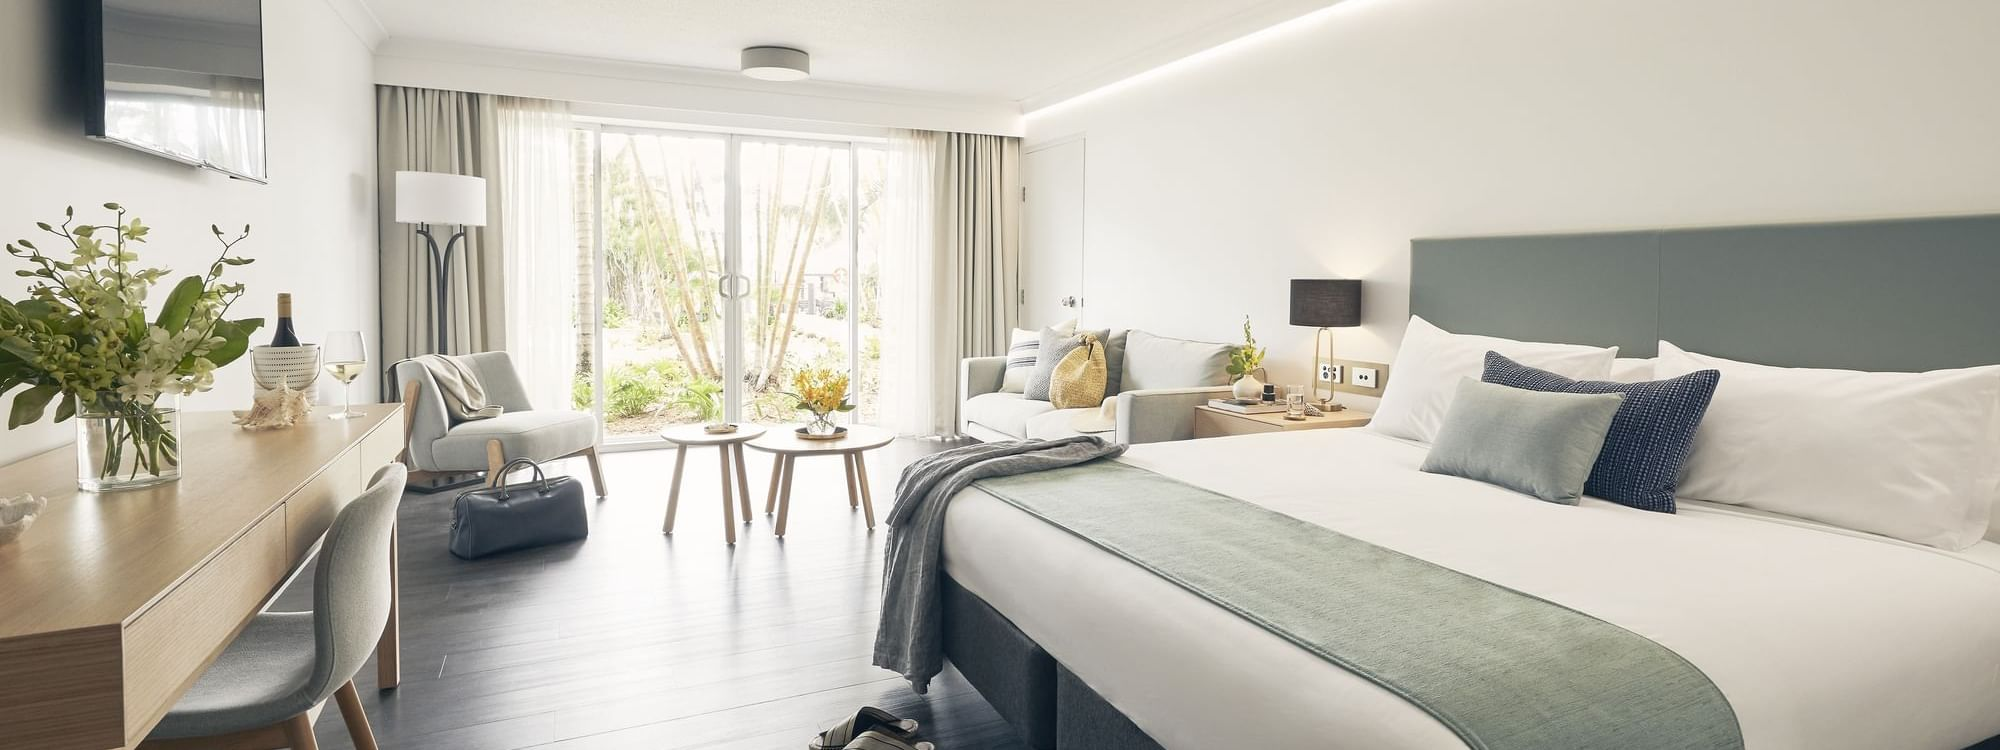 Superior Room with king sized bed at Daydream Island Resort